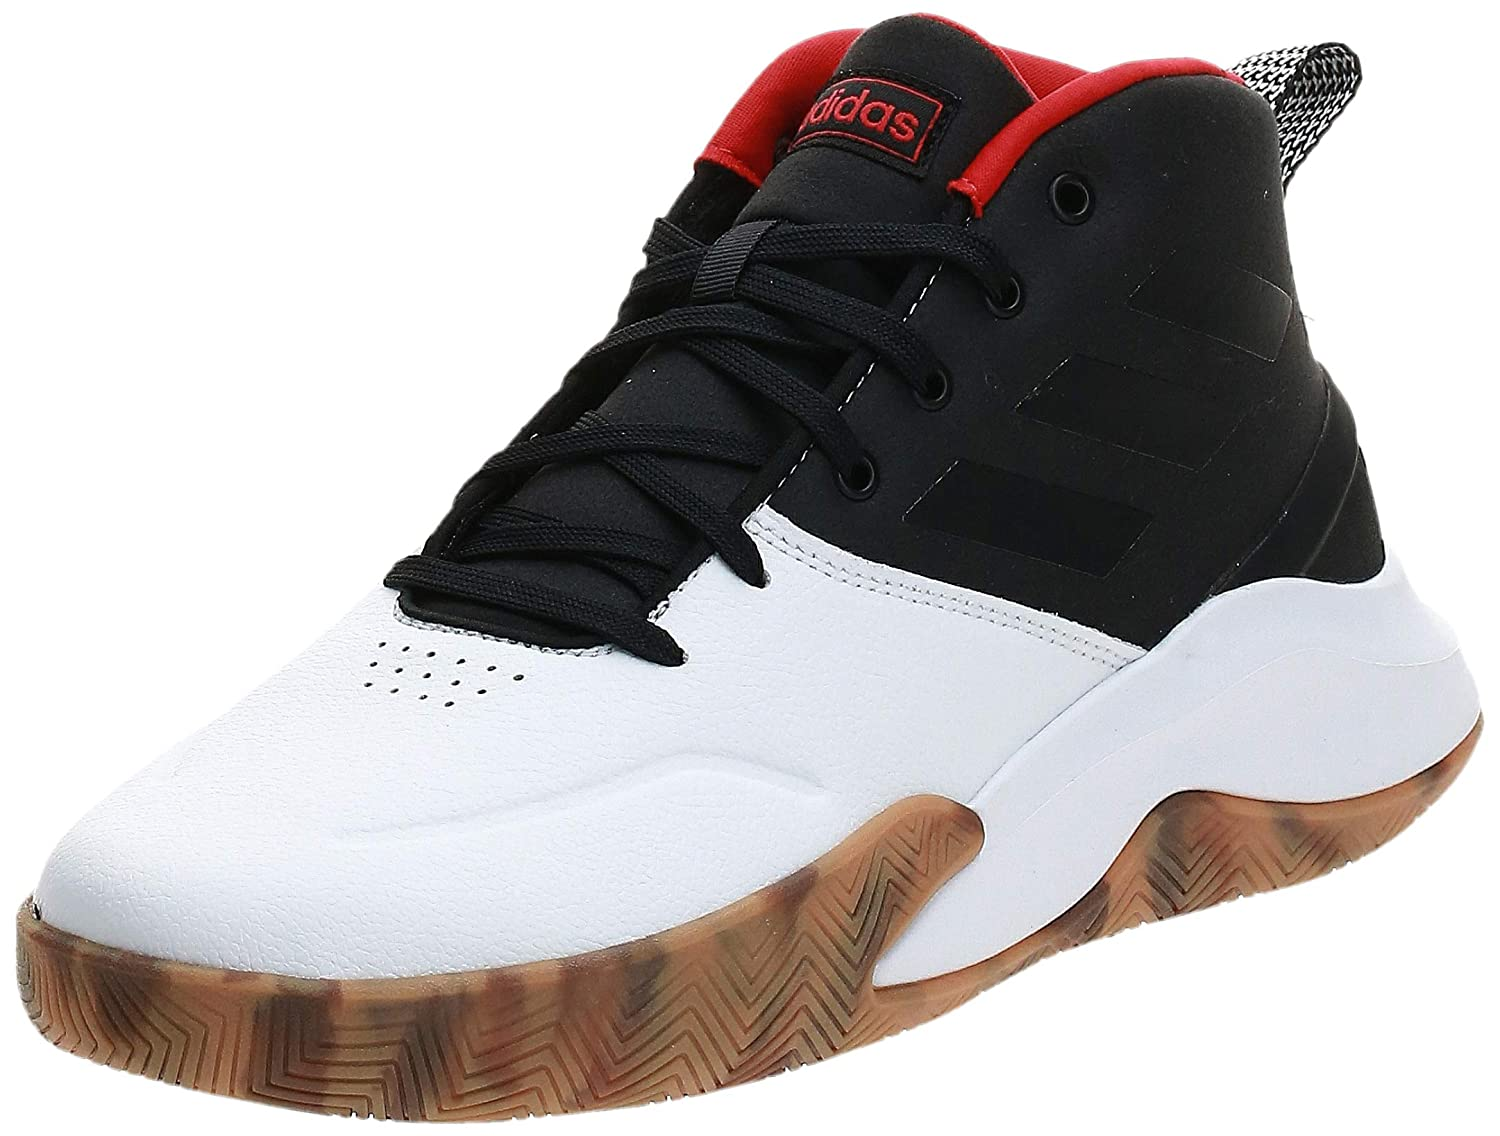 Ownthegame Leather Basketball Shoes